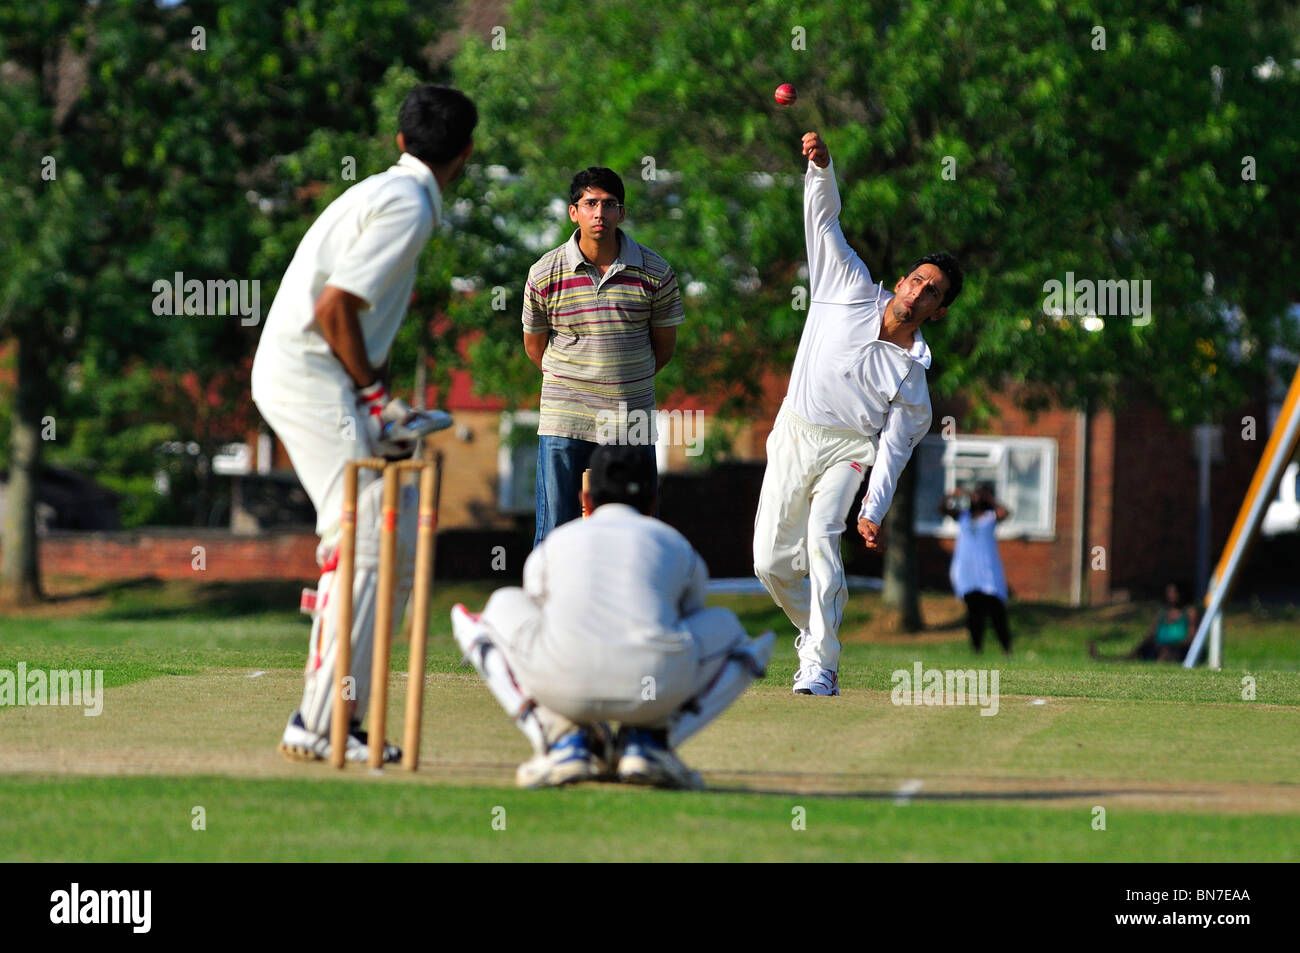 Cricket Match in Luton Stock Photo